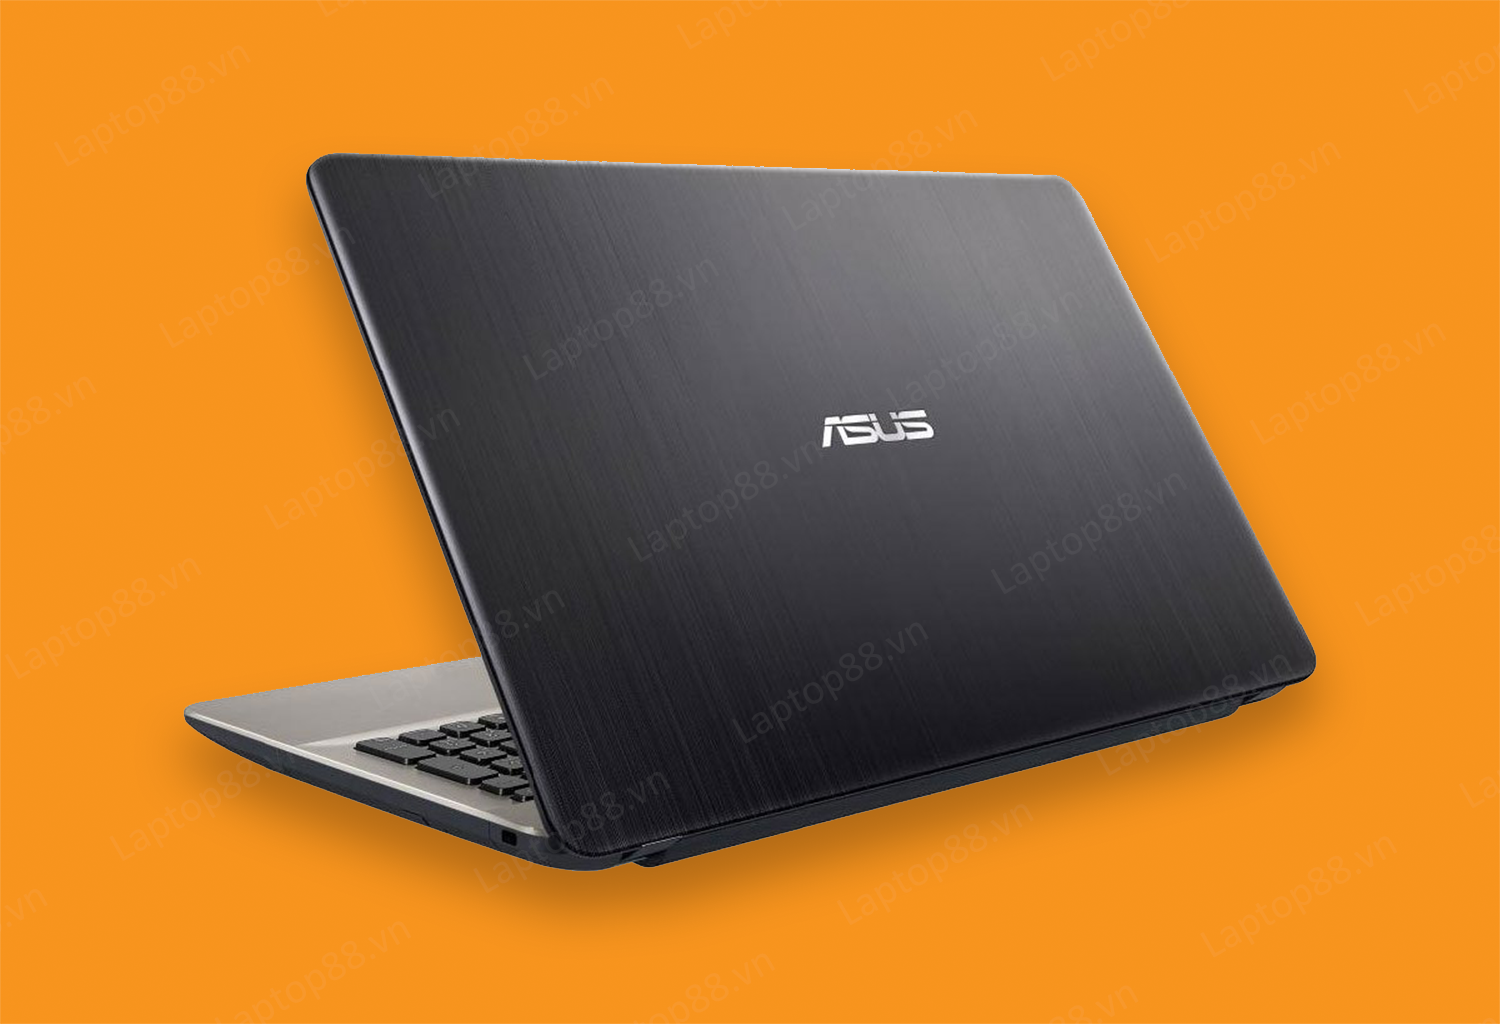 Laptop Asus X541U (Intel Core i5 7200U, RAM 4GB, HDD 500GB, Nvidia GeForce 920M, 15.6 inch HD)3